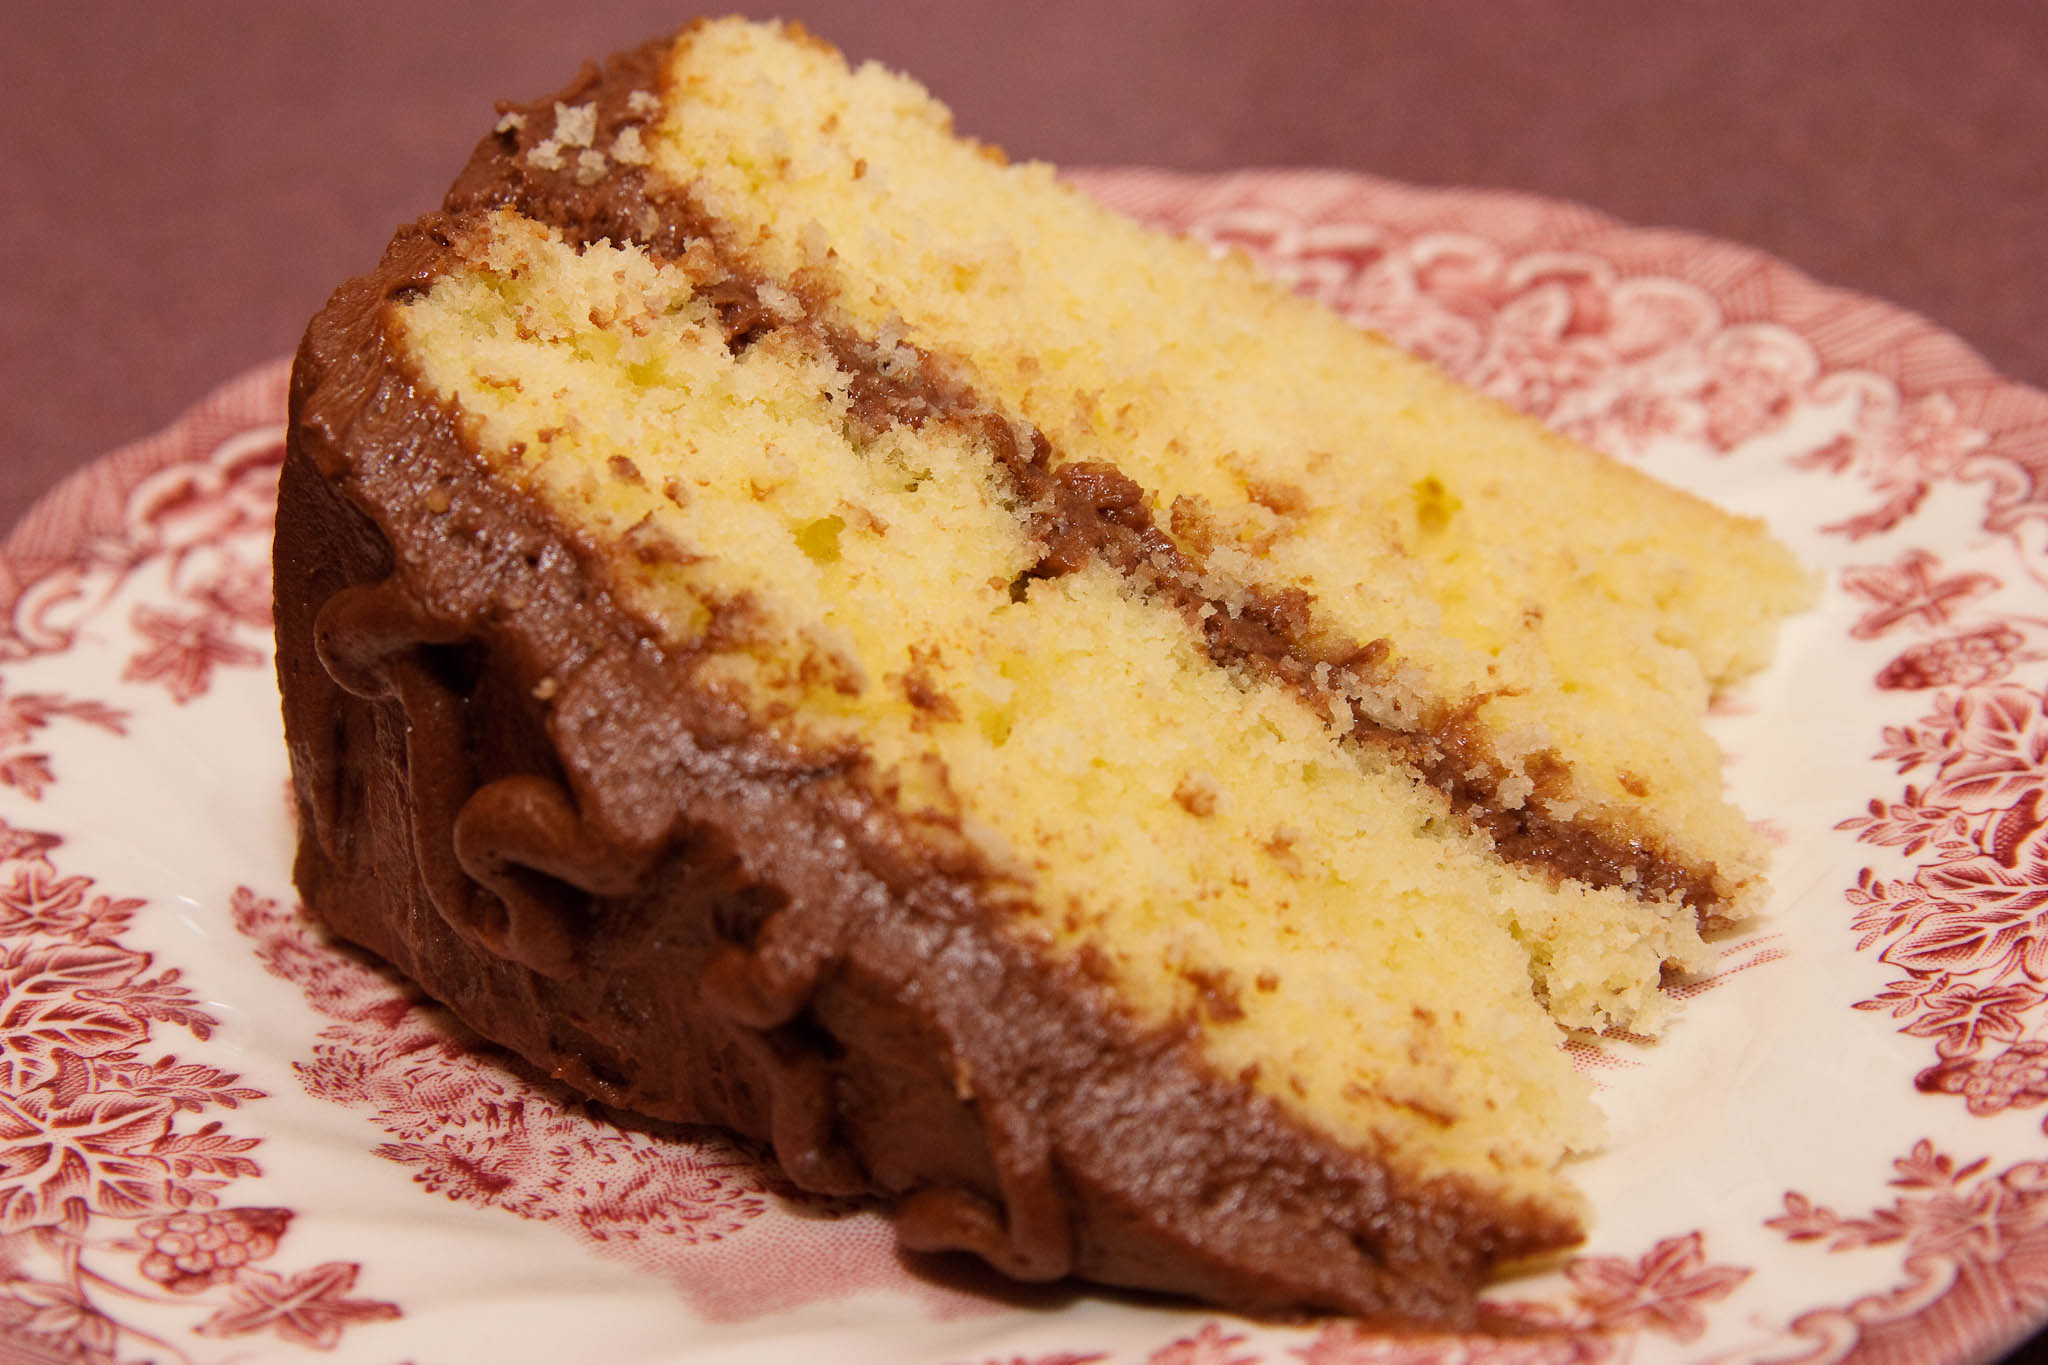 Cake Recipe From Scratch  Cake Mix Recipes From Scratch Basic Shirley Mitchel Blog